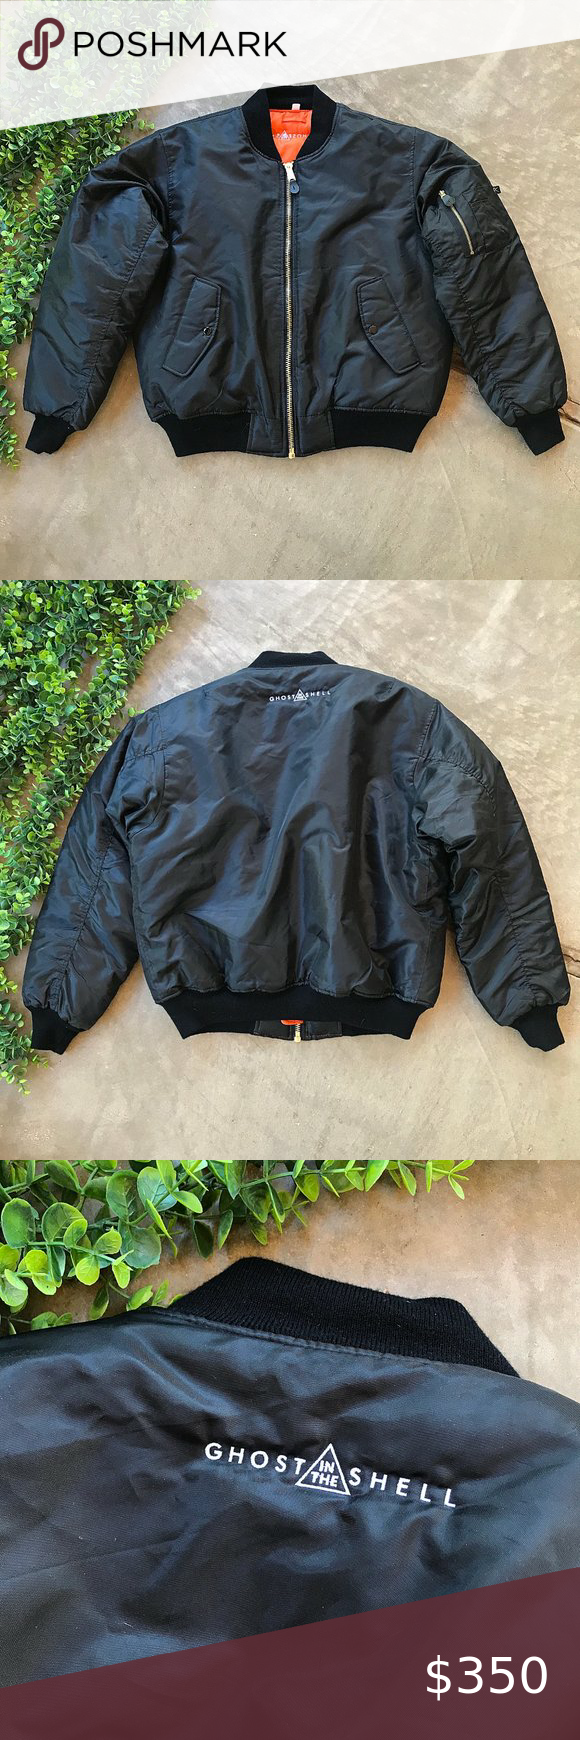 Ghost In The Shell Black Puffer Bomber Jacket Black Leather Bomber Jacket Black Puffer Bomber Jacket [ 1740 x 580 Pixel ]